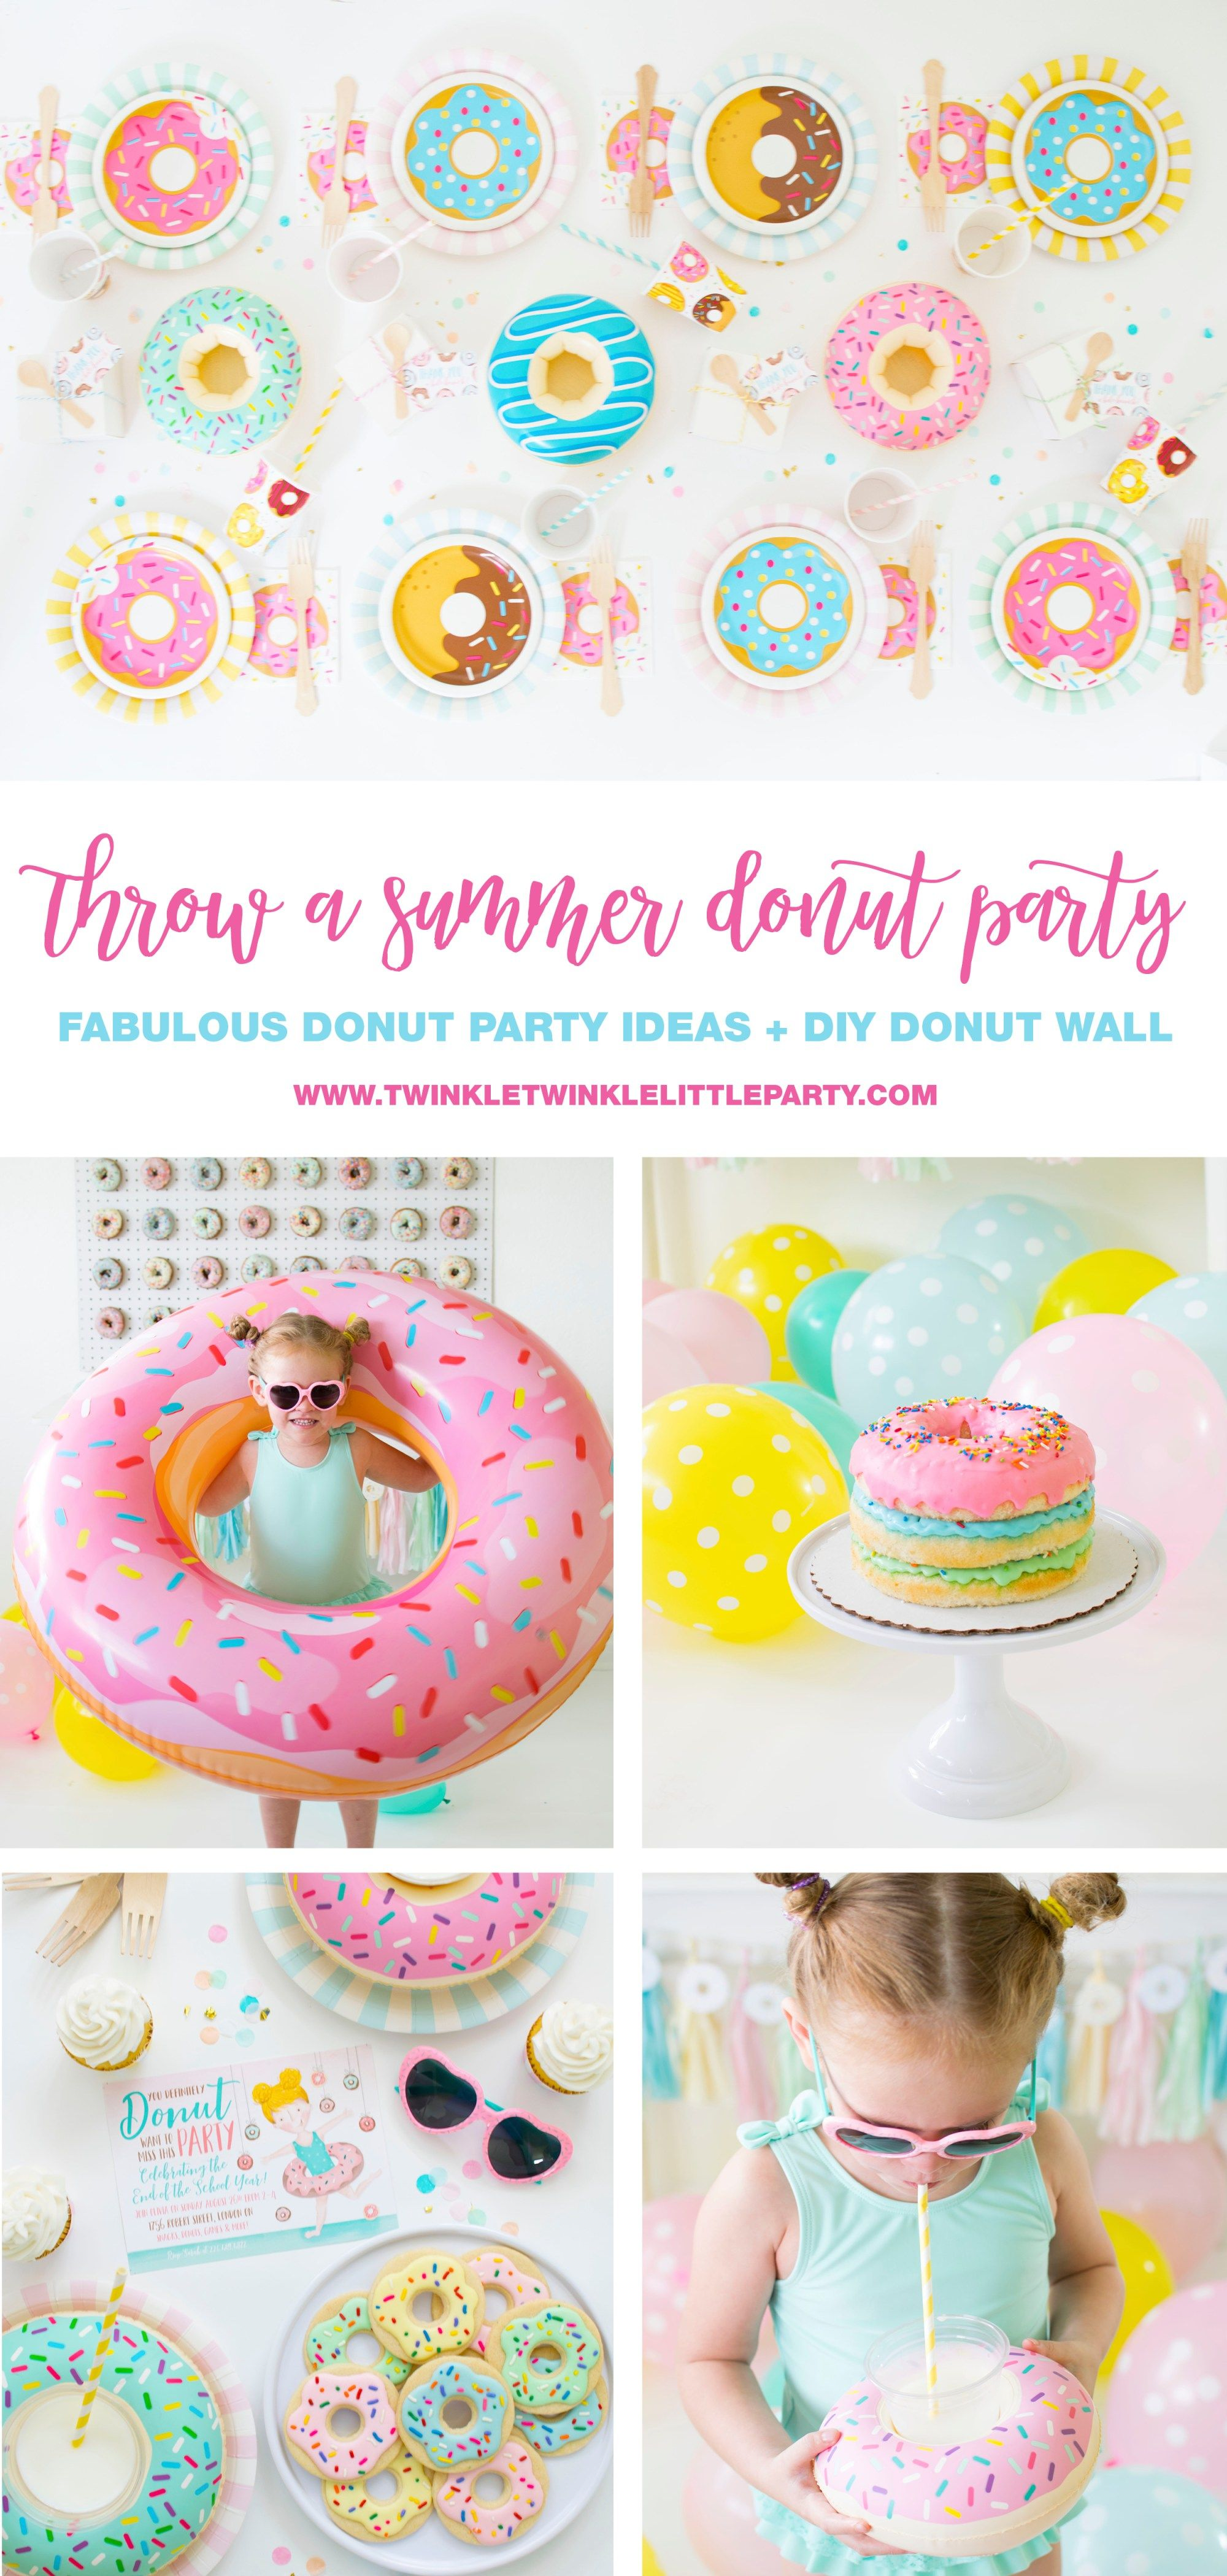 Throw A Summer Donut Party For A Birthday Party Or End Of Summer